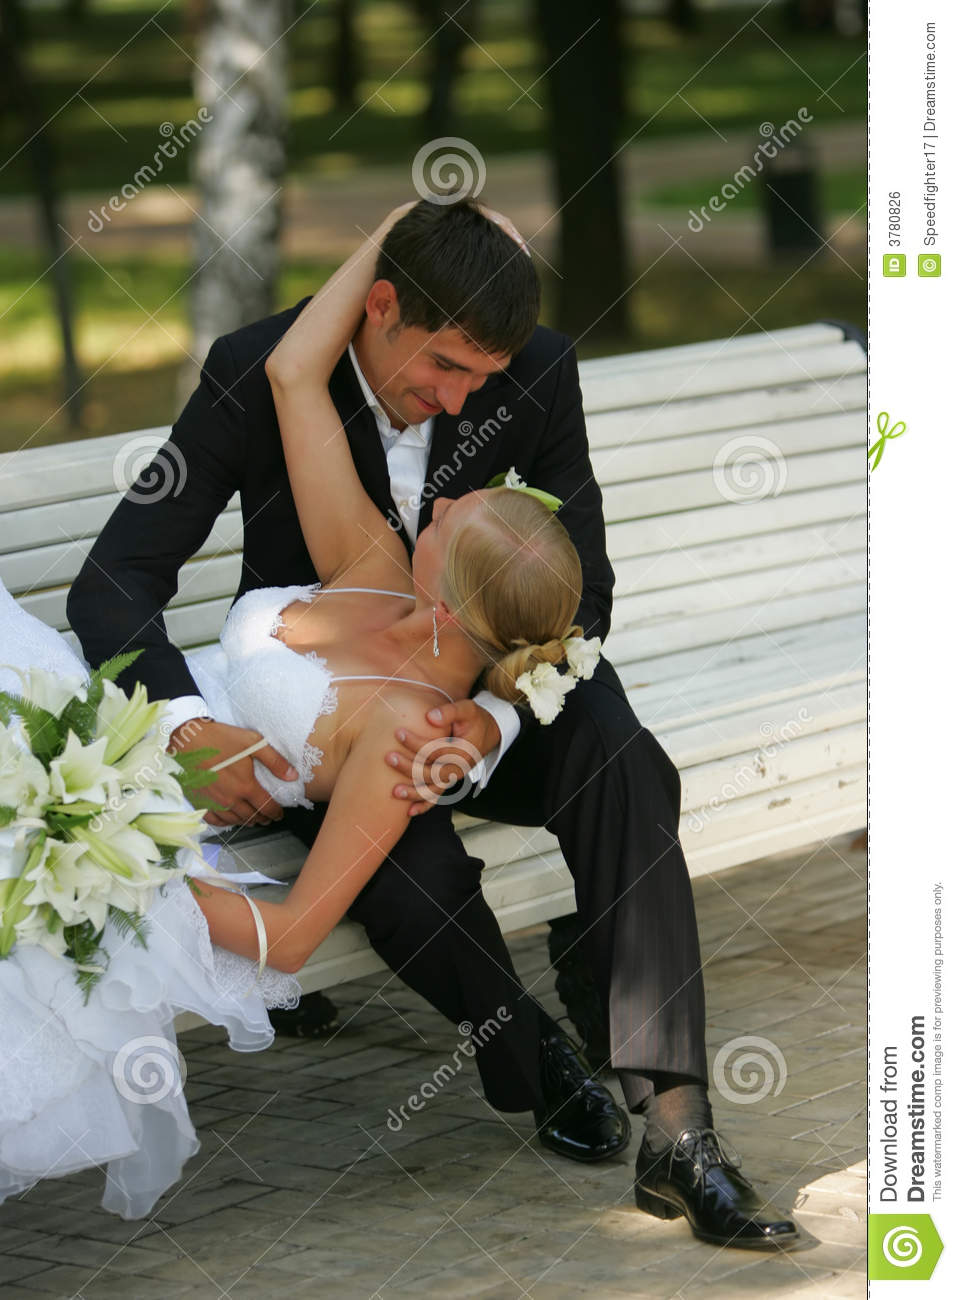 Bride And Groom Kissing On Park Bench Royalty Free Stock Image - Image ...